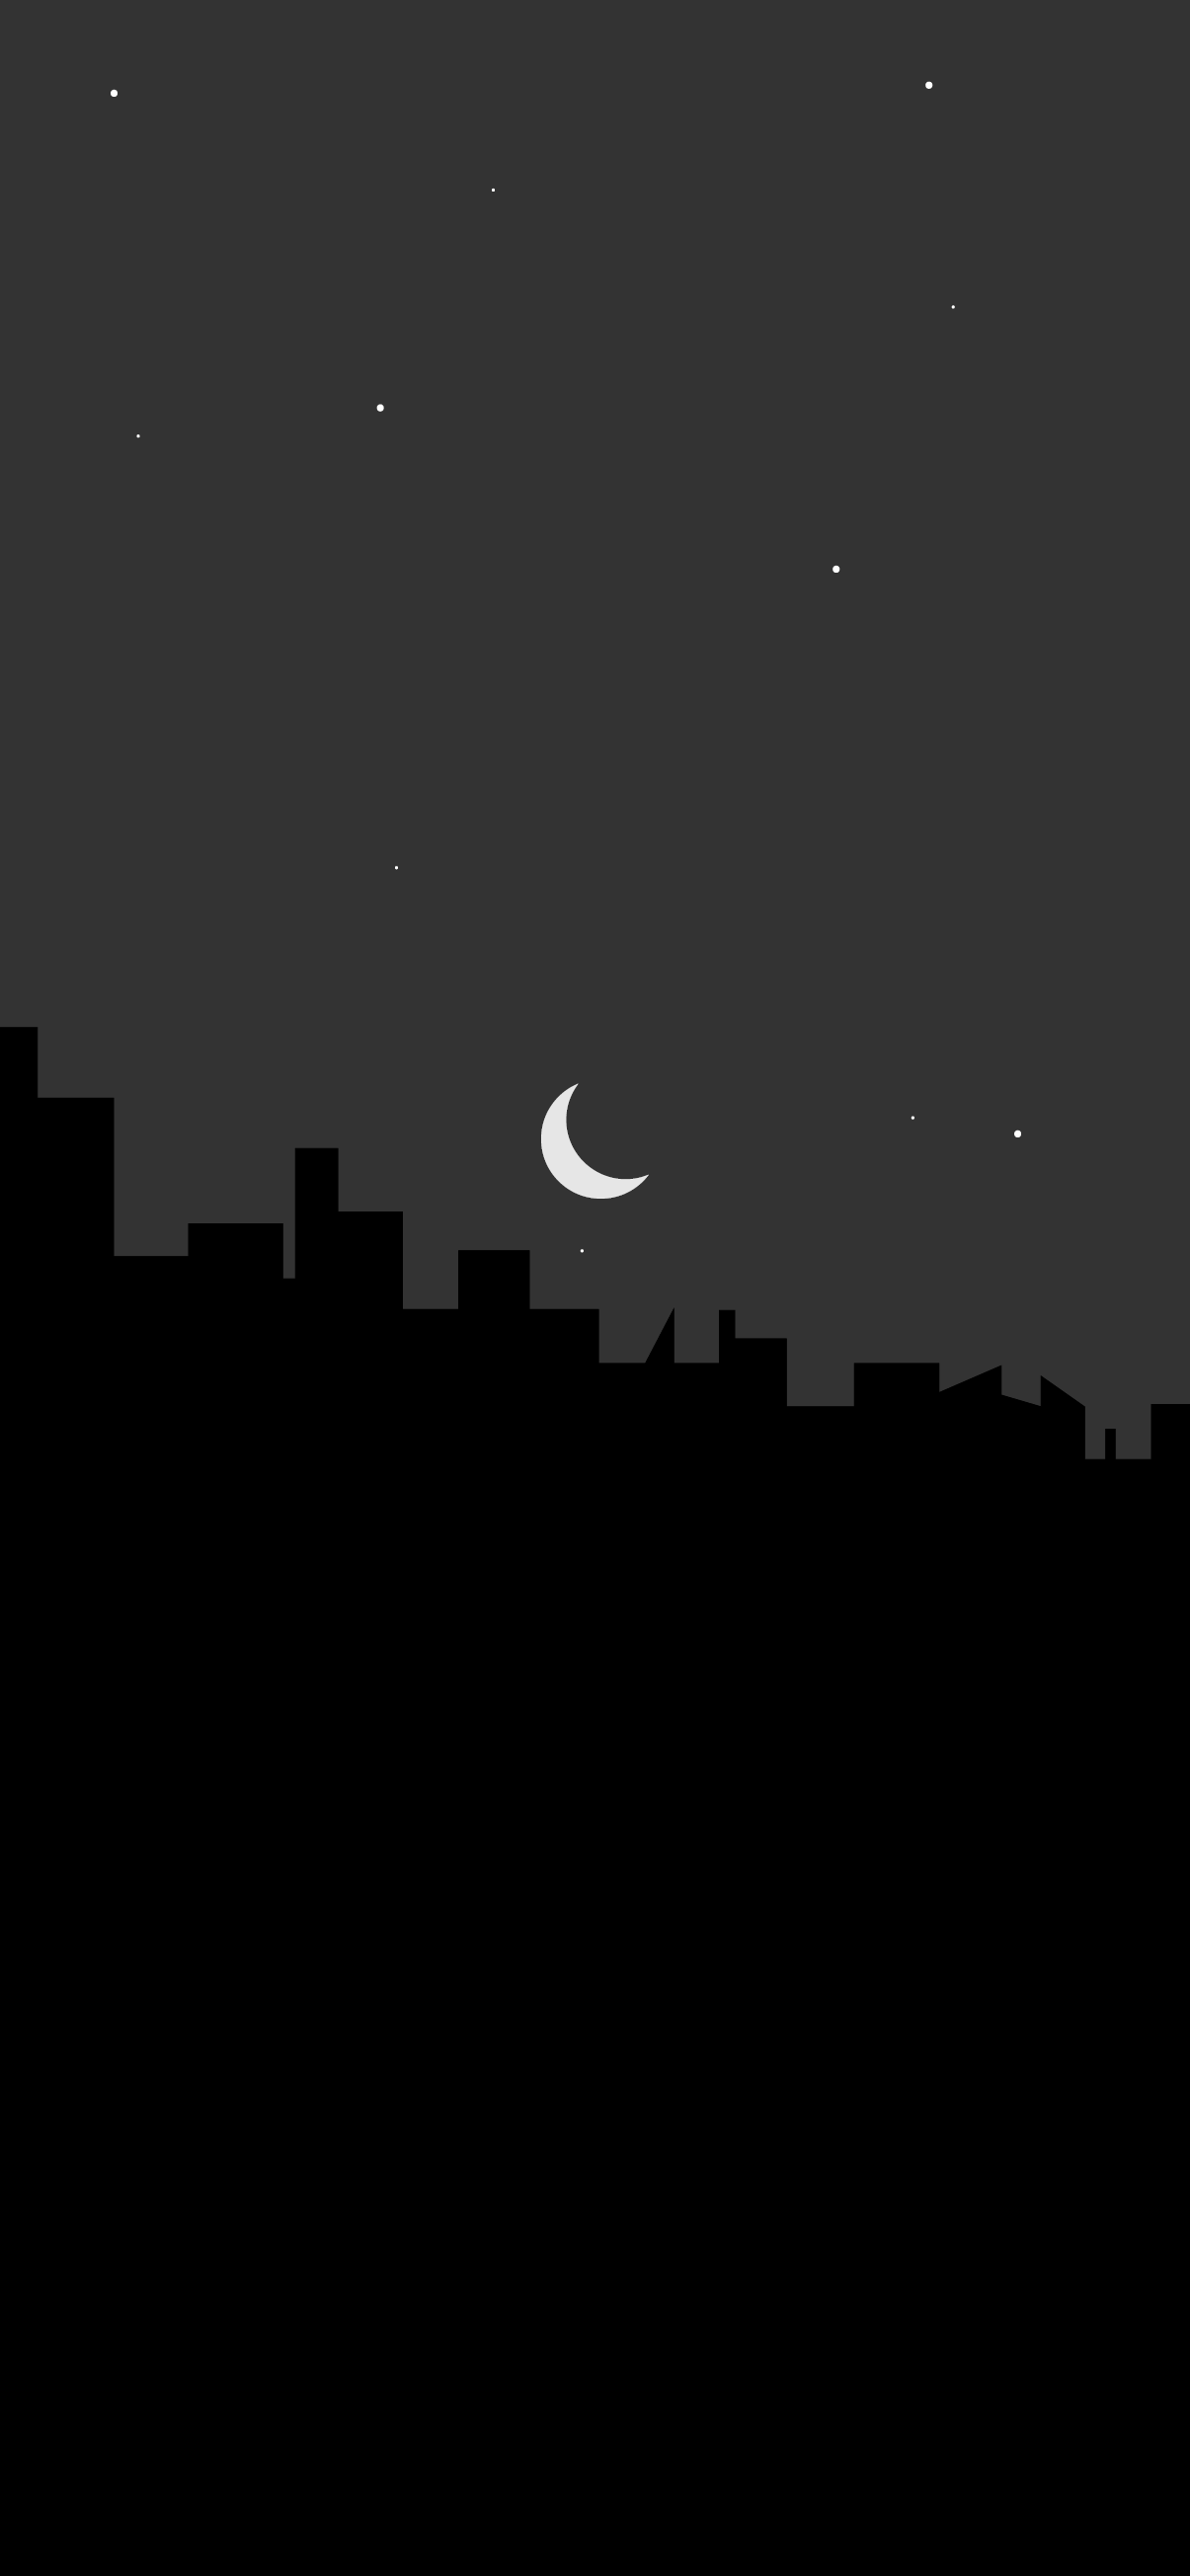 grey and black wallpaper city silhouette minimalist 4k background